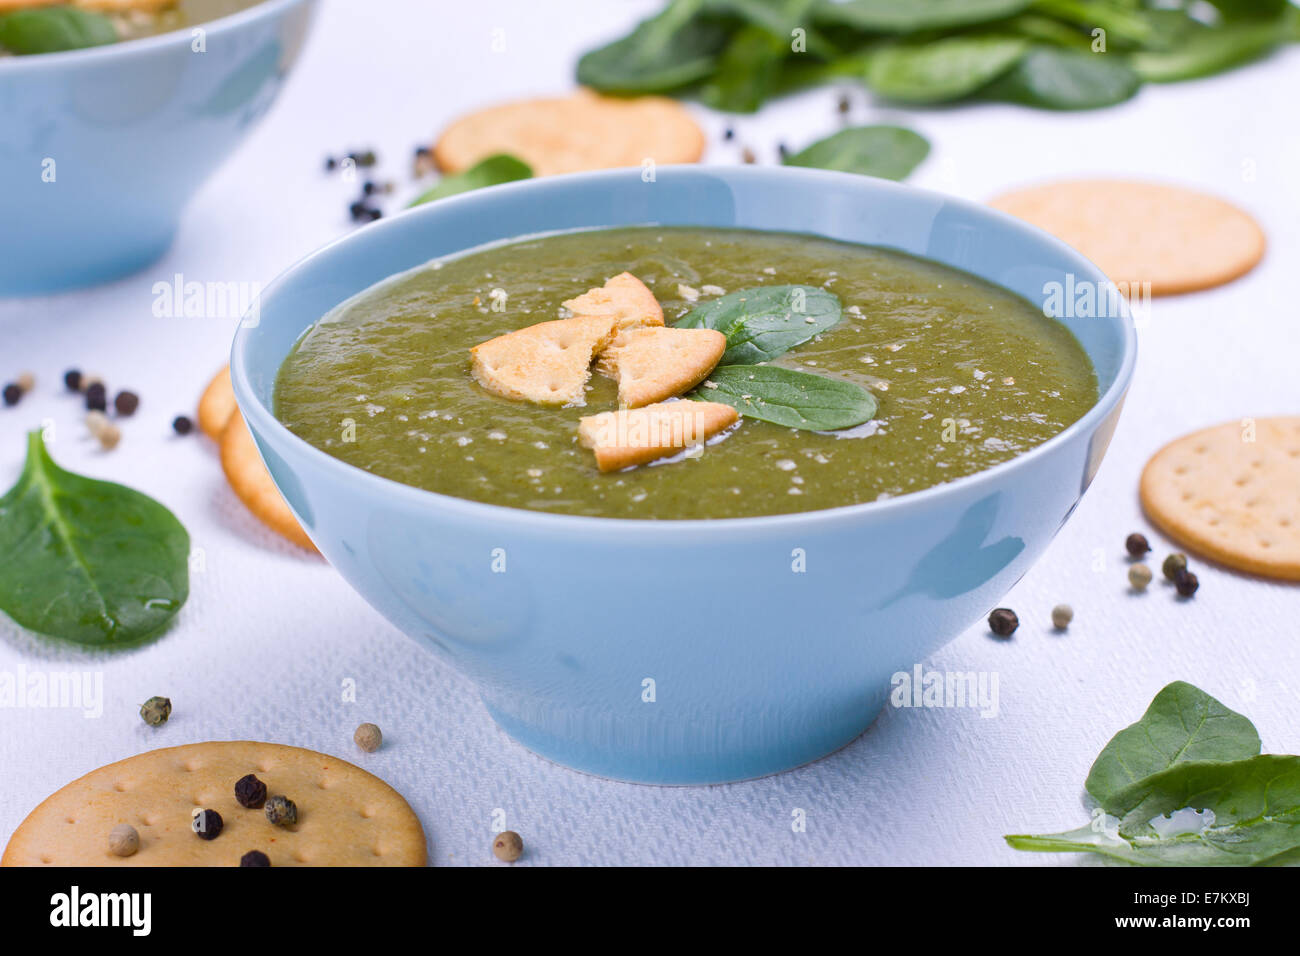 Pureed spinach soup in a bowl - Stock Image